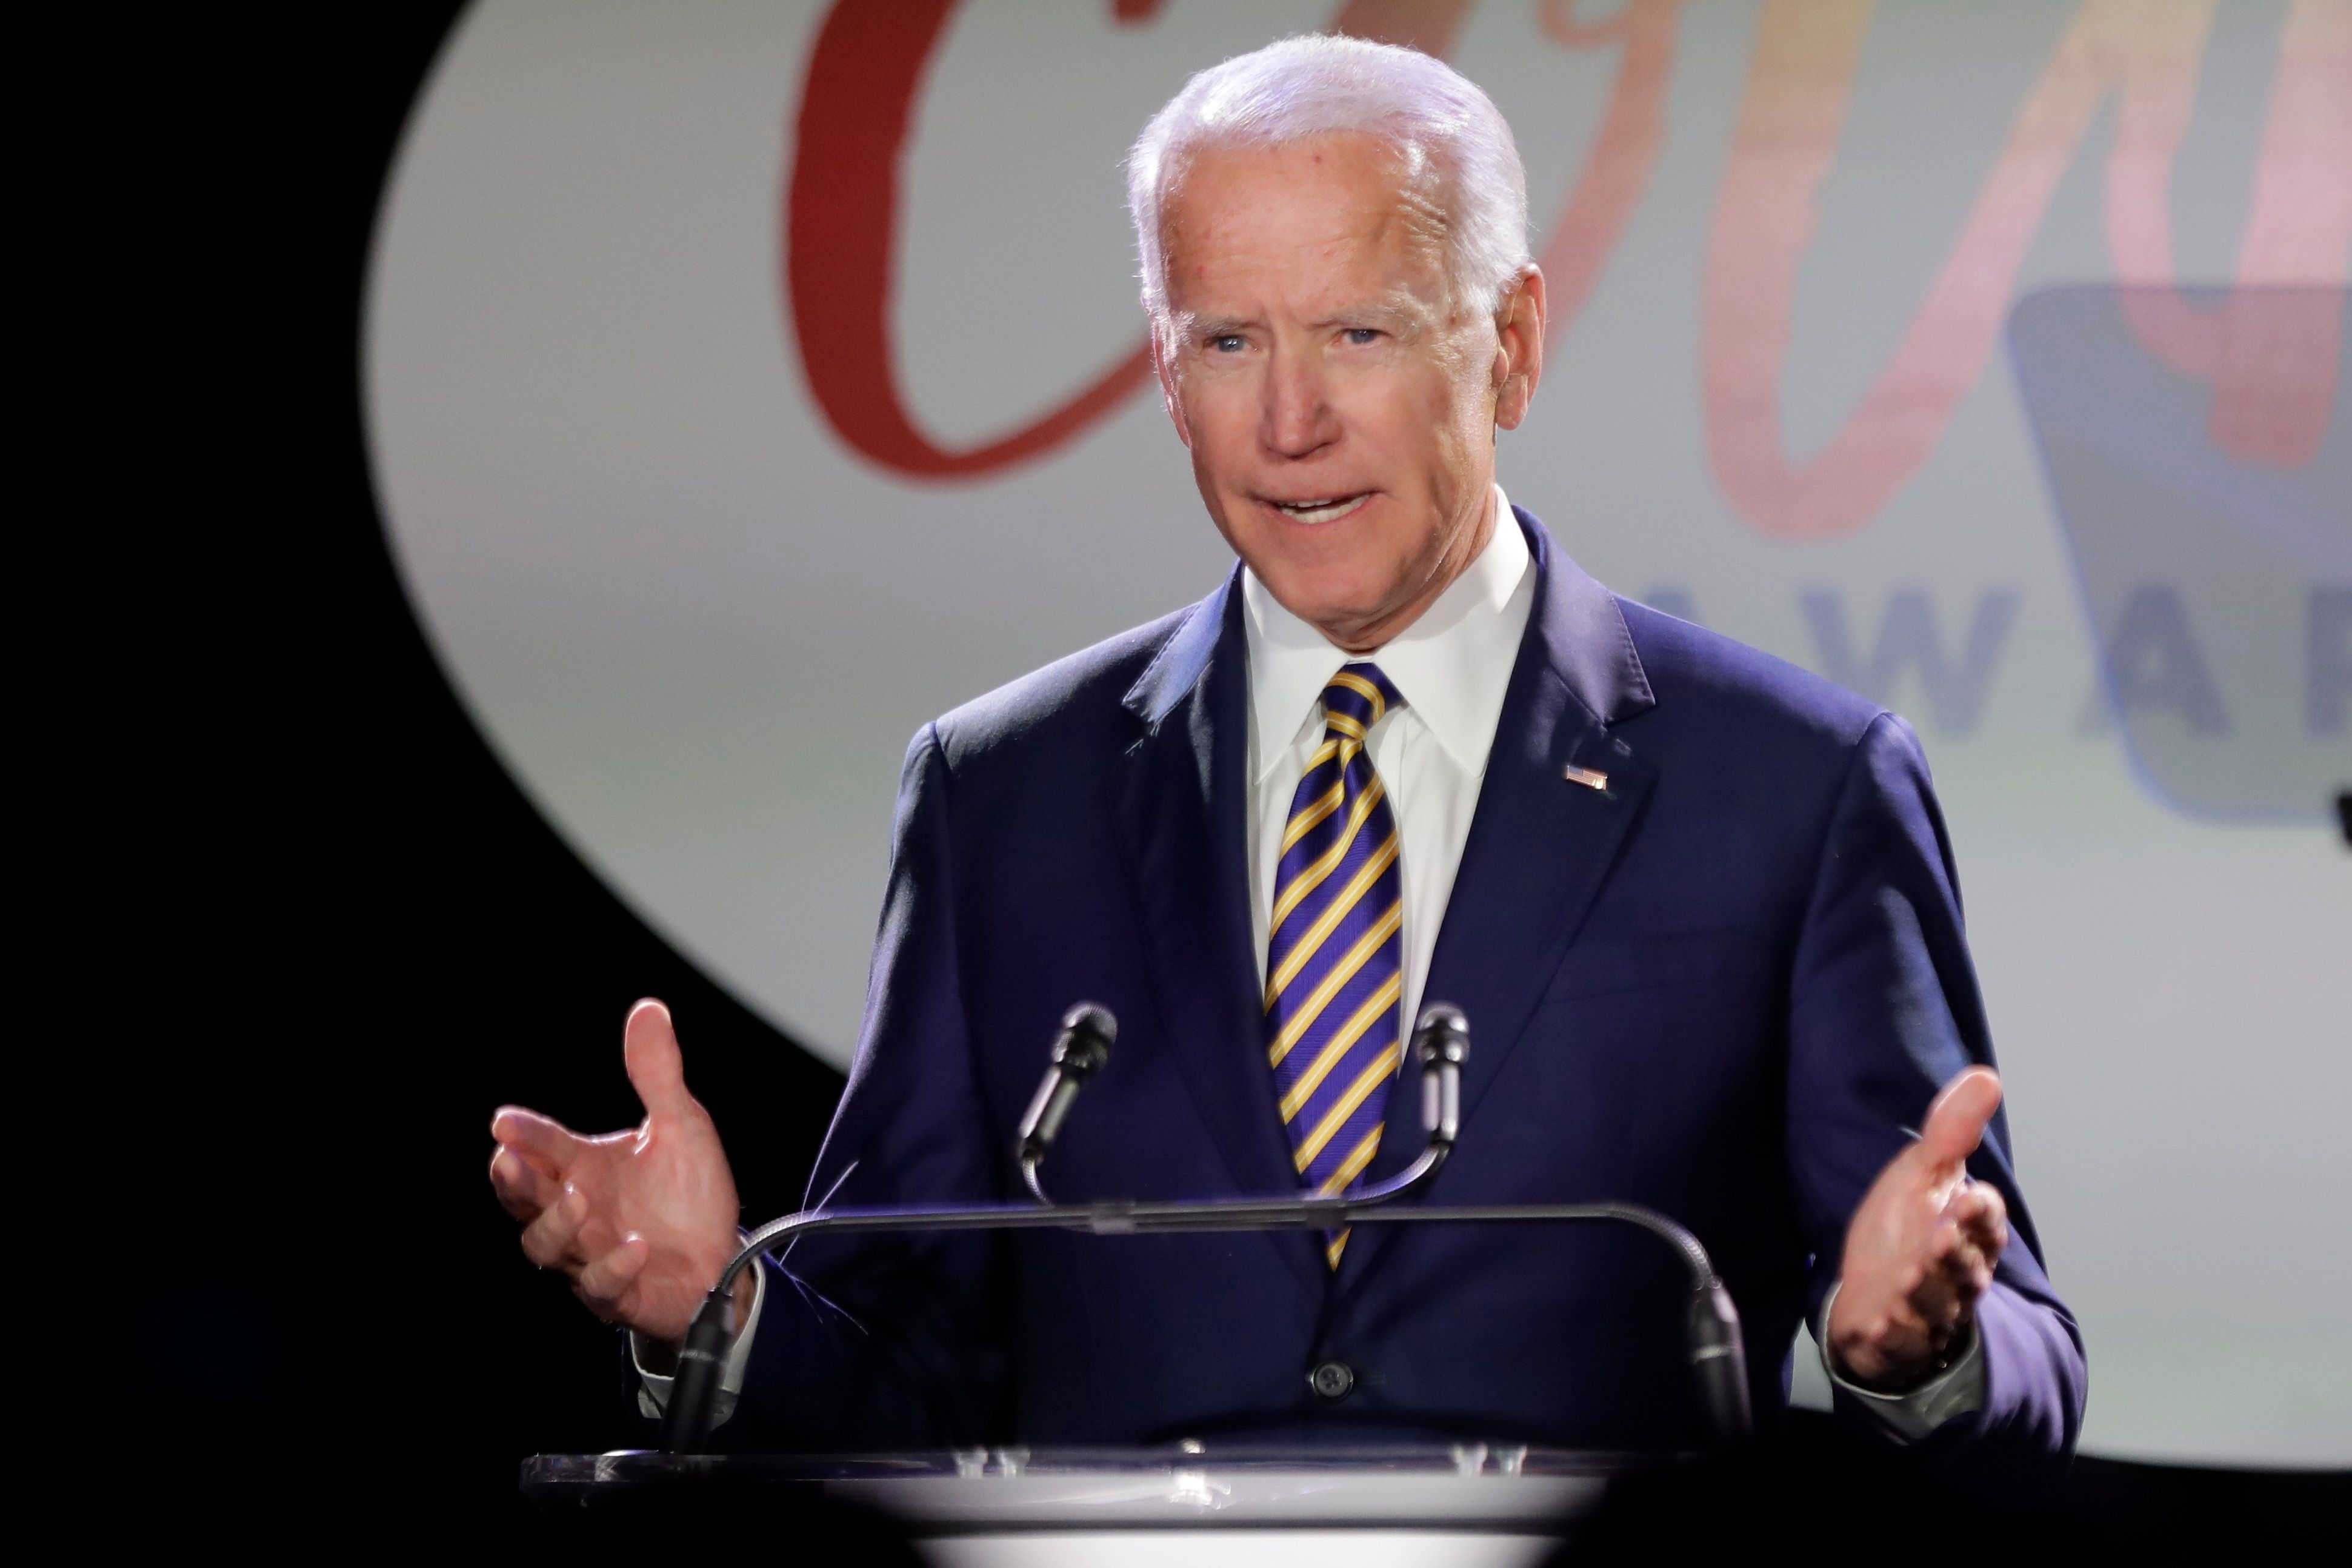 Former Vice President Joe Biden at the Biden Courage Awards in New York City on March